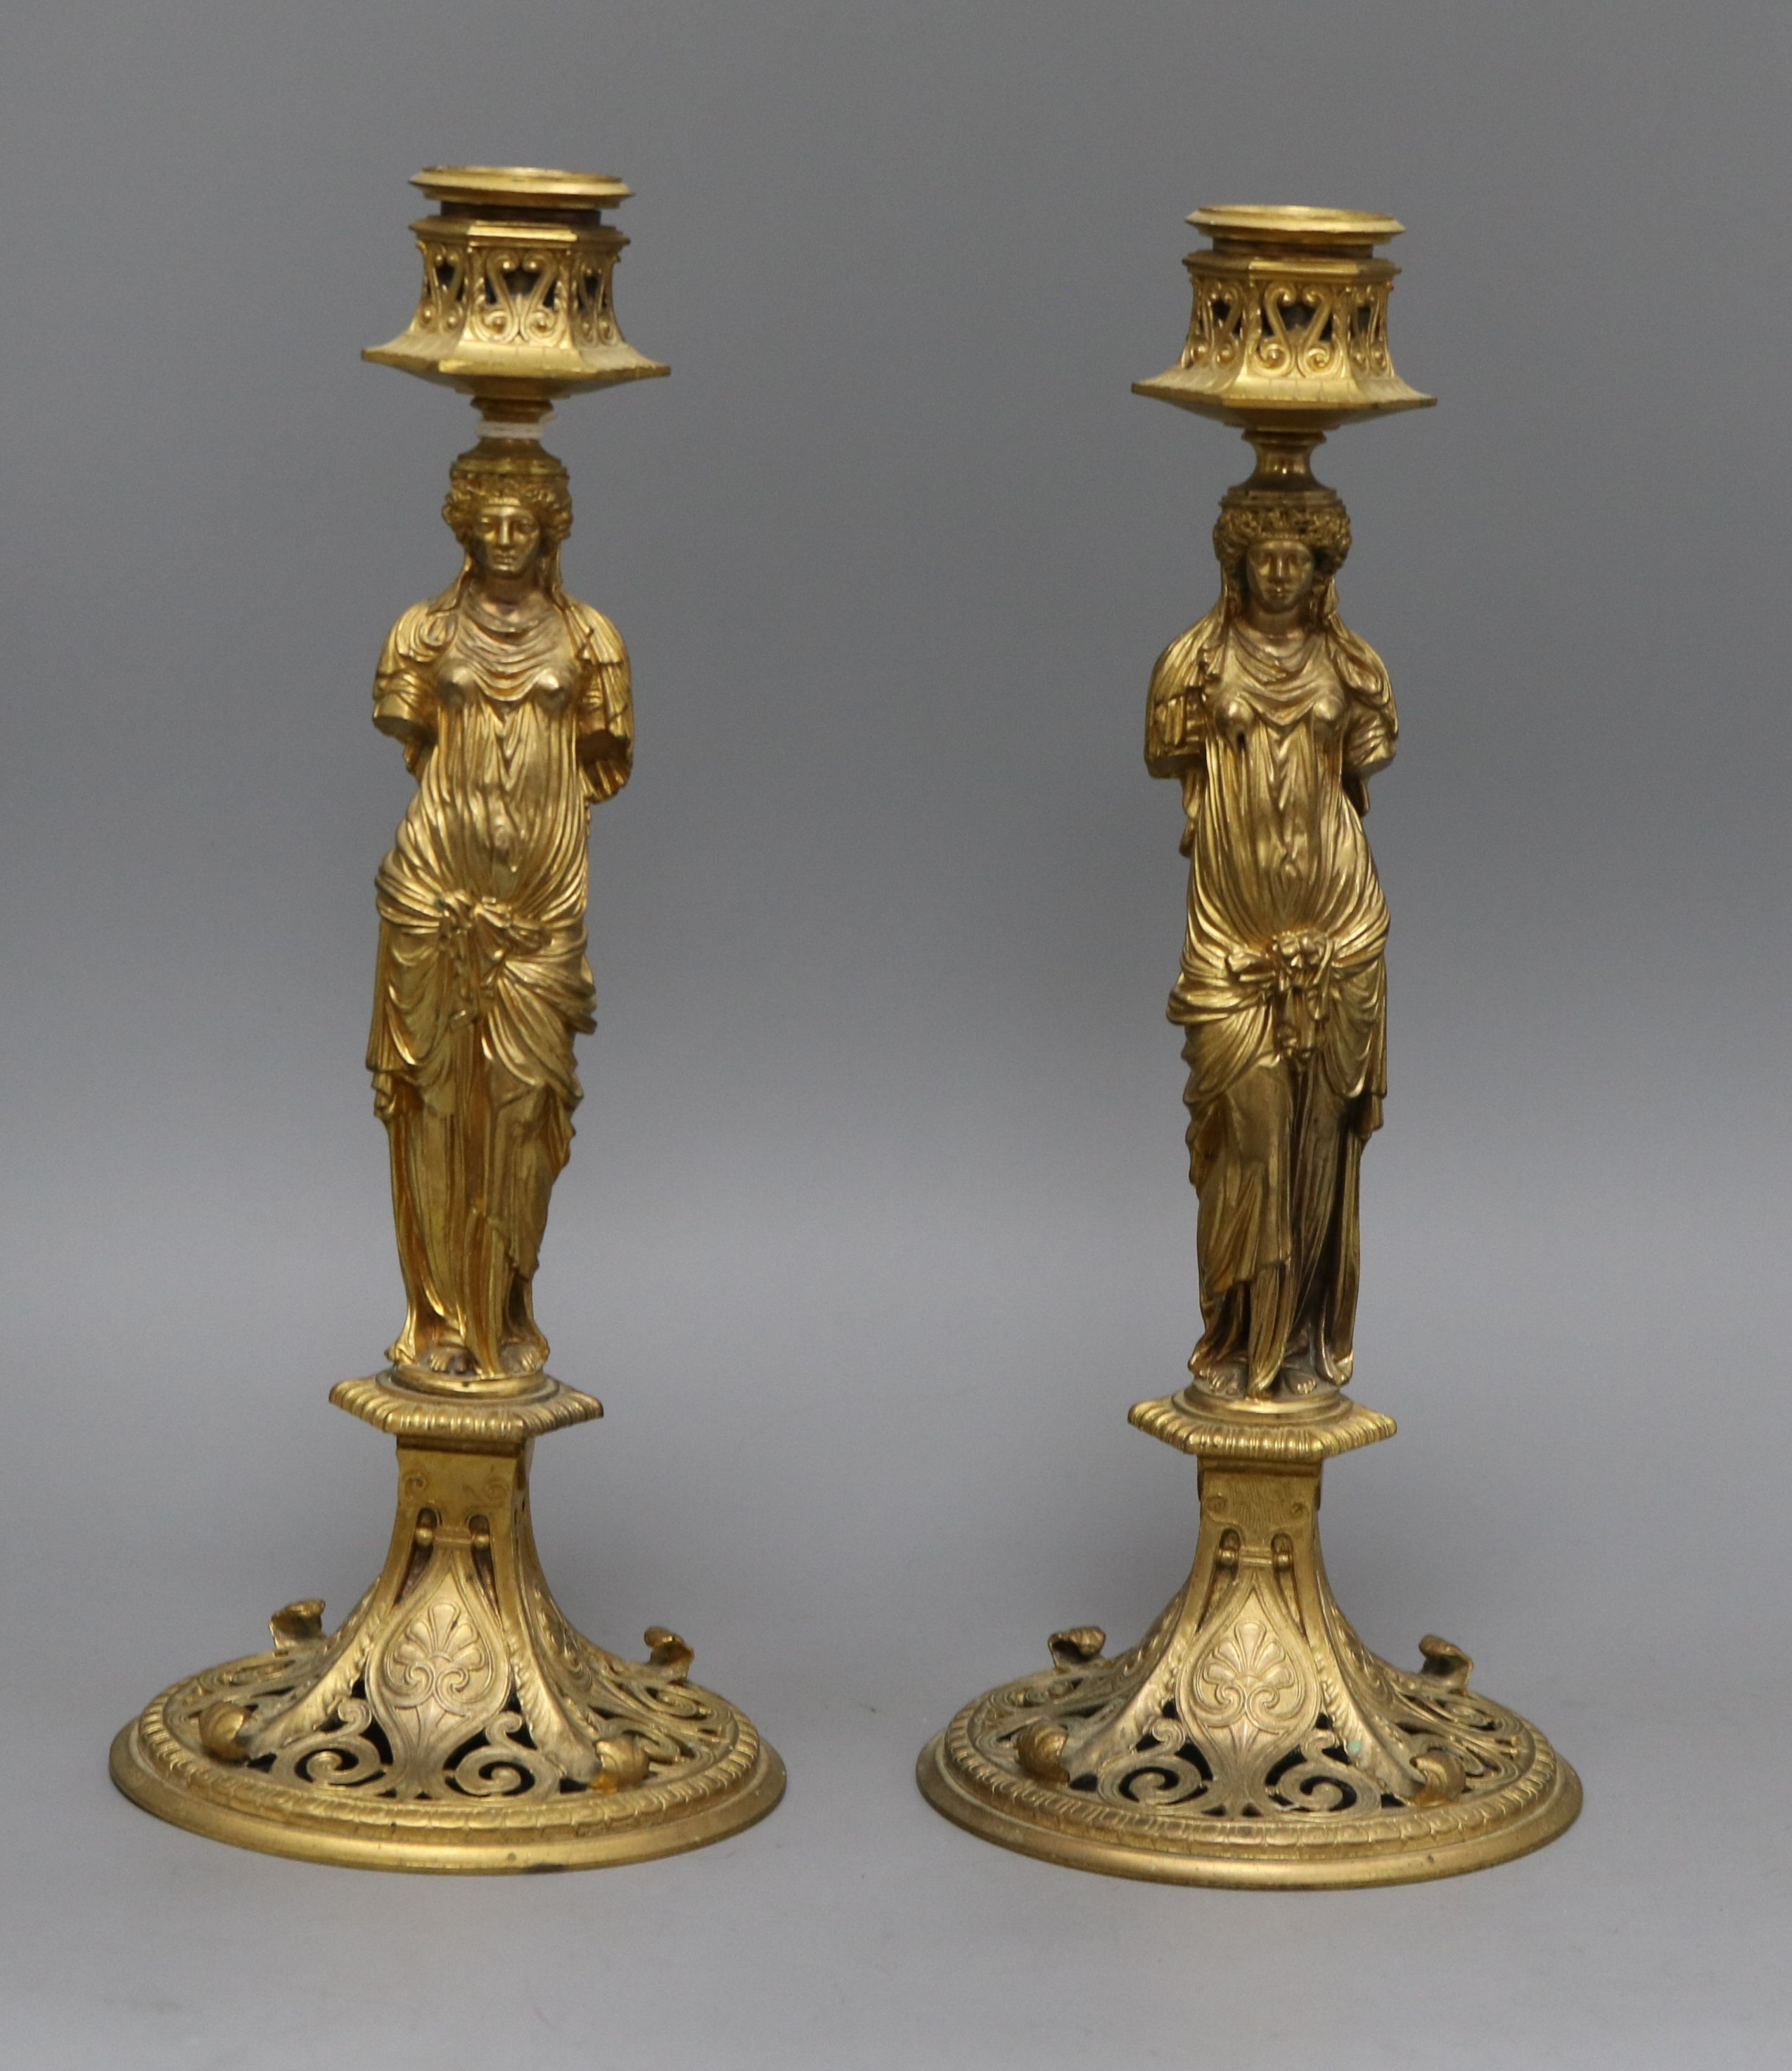 Lot 29 - A pair of Grecian revival ormolu candlesticks height 27cm